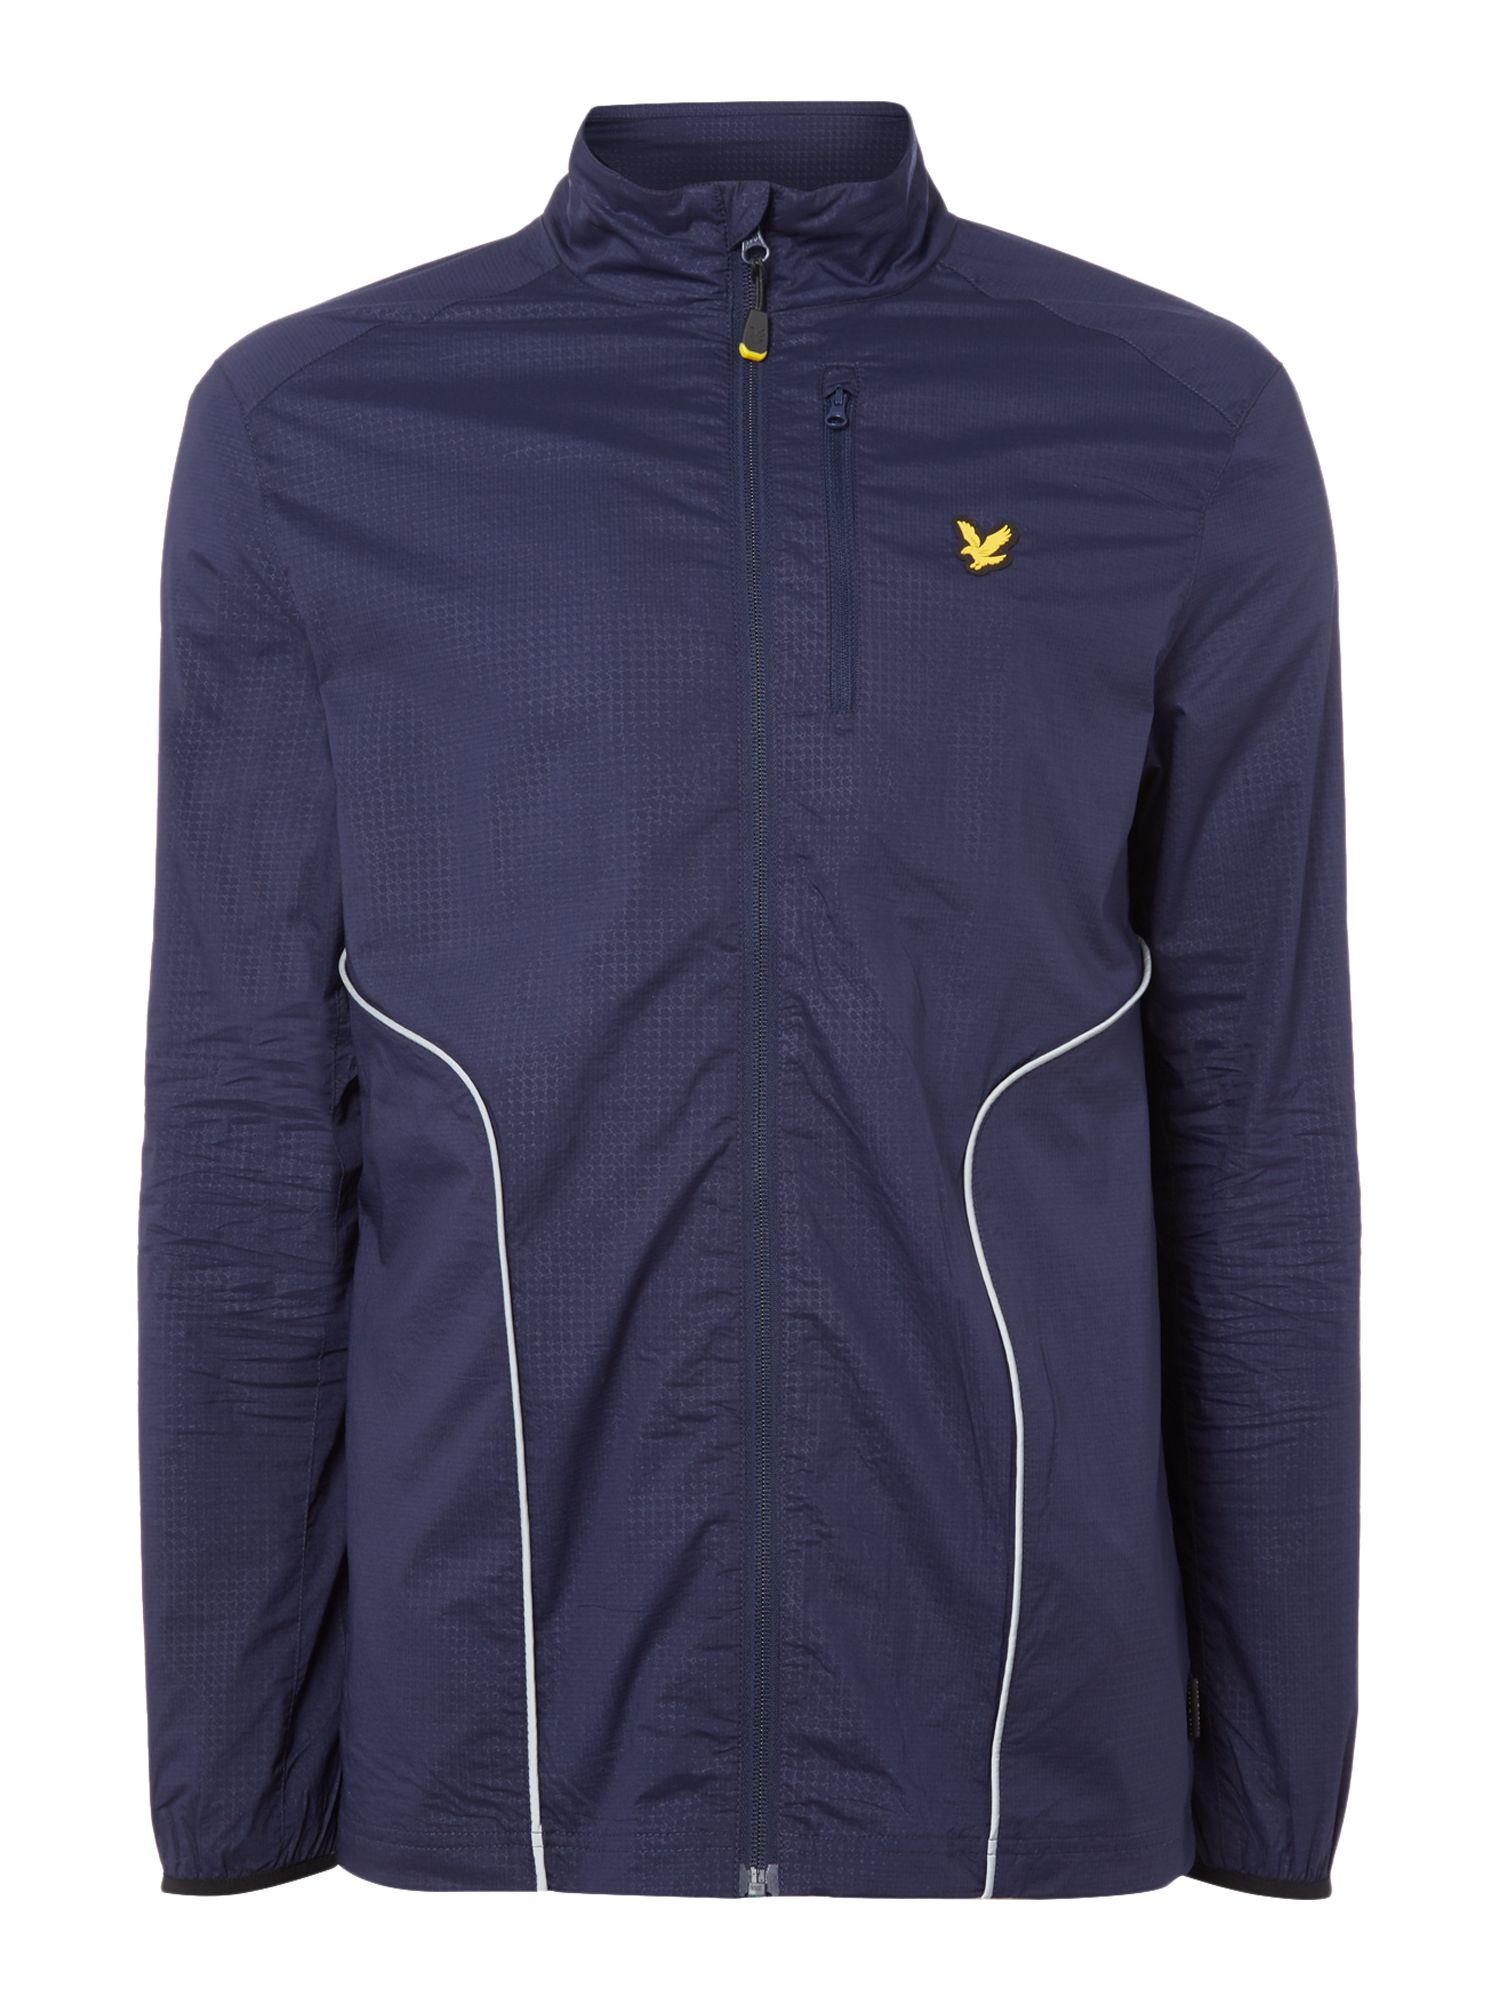 Lyle and Scott Men's Lyle and Scott Sports Chataway lightweight jacket, Navy